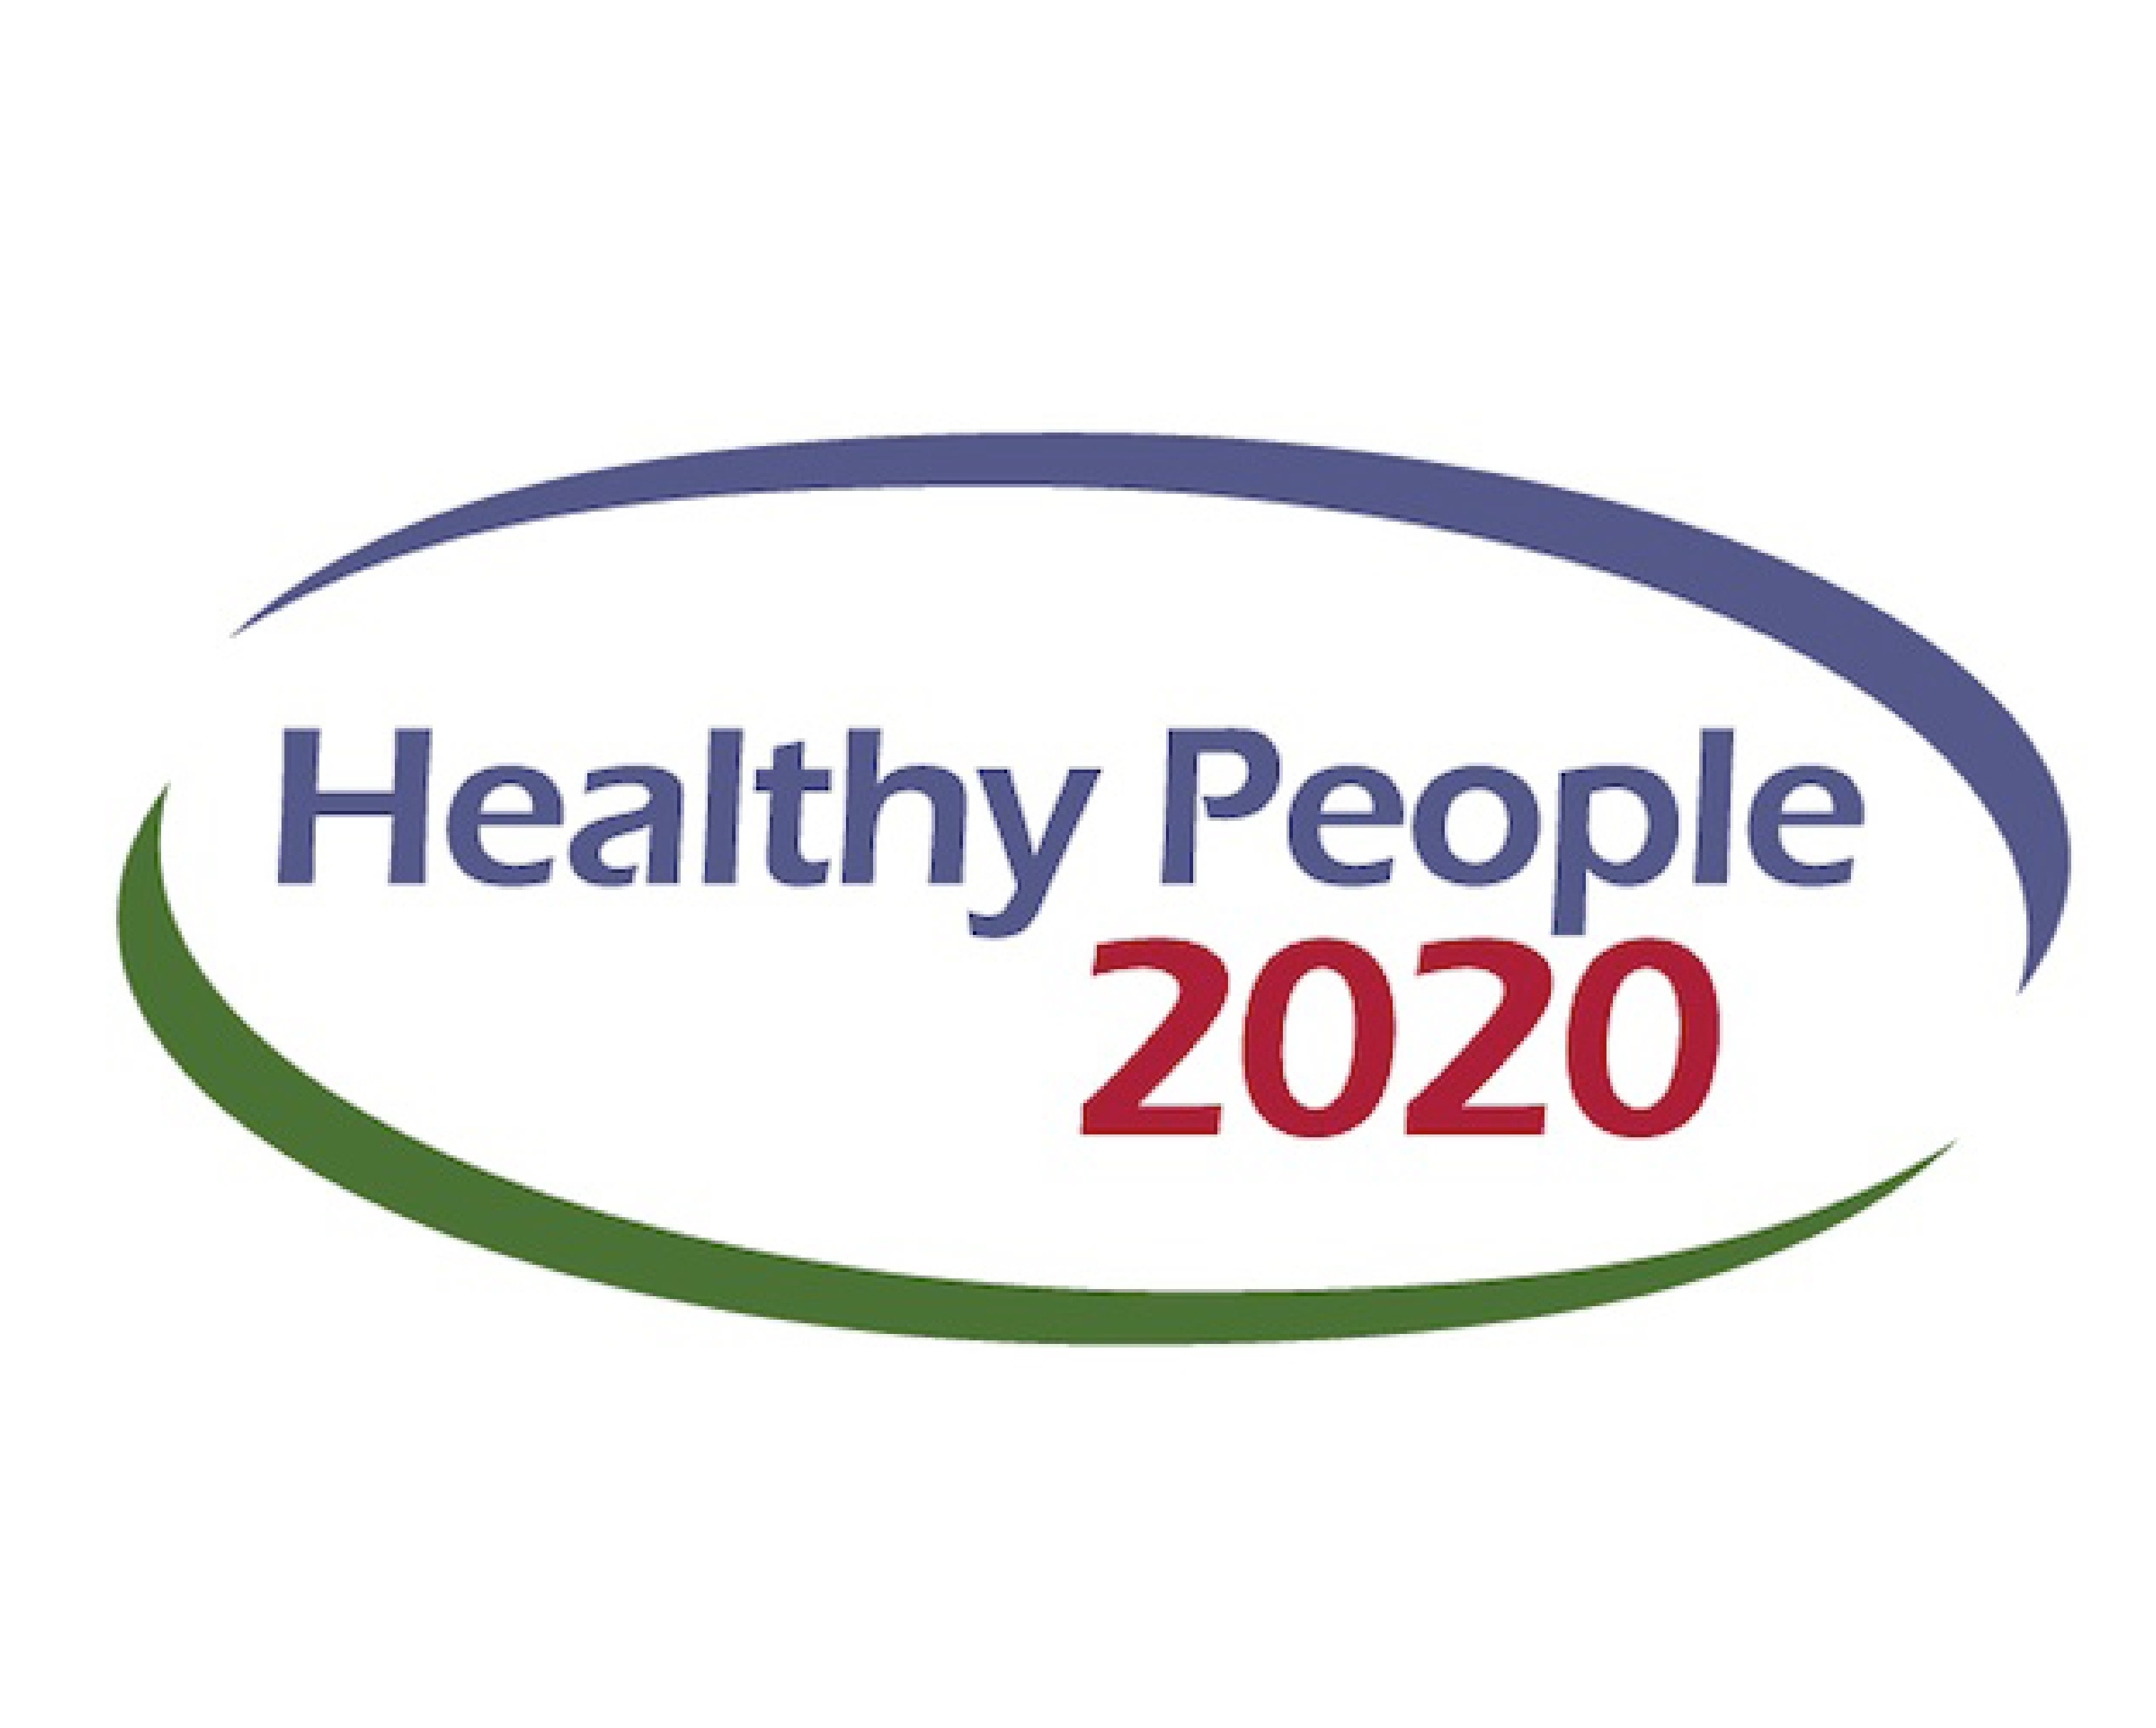 'Healthy People 2020' Round-Up: Progress In Exercising, Maternity, Childcare, and Teen Smoking Habit, but Failed To Cure Metal Health and Obesity